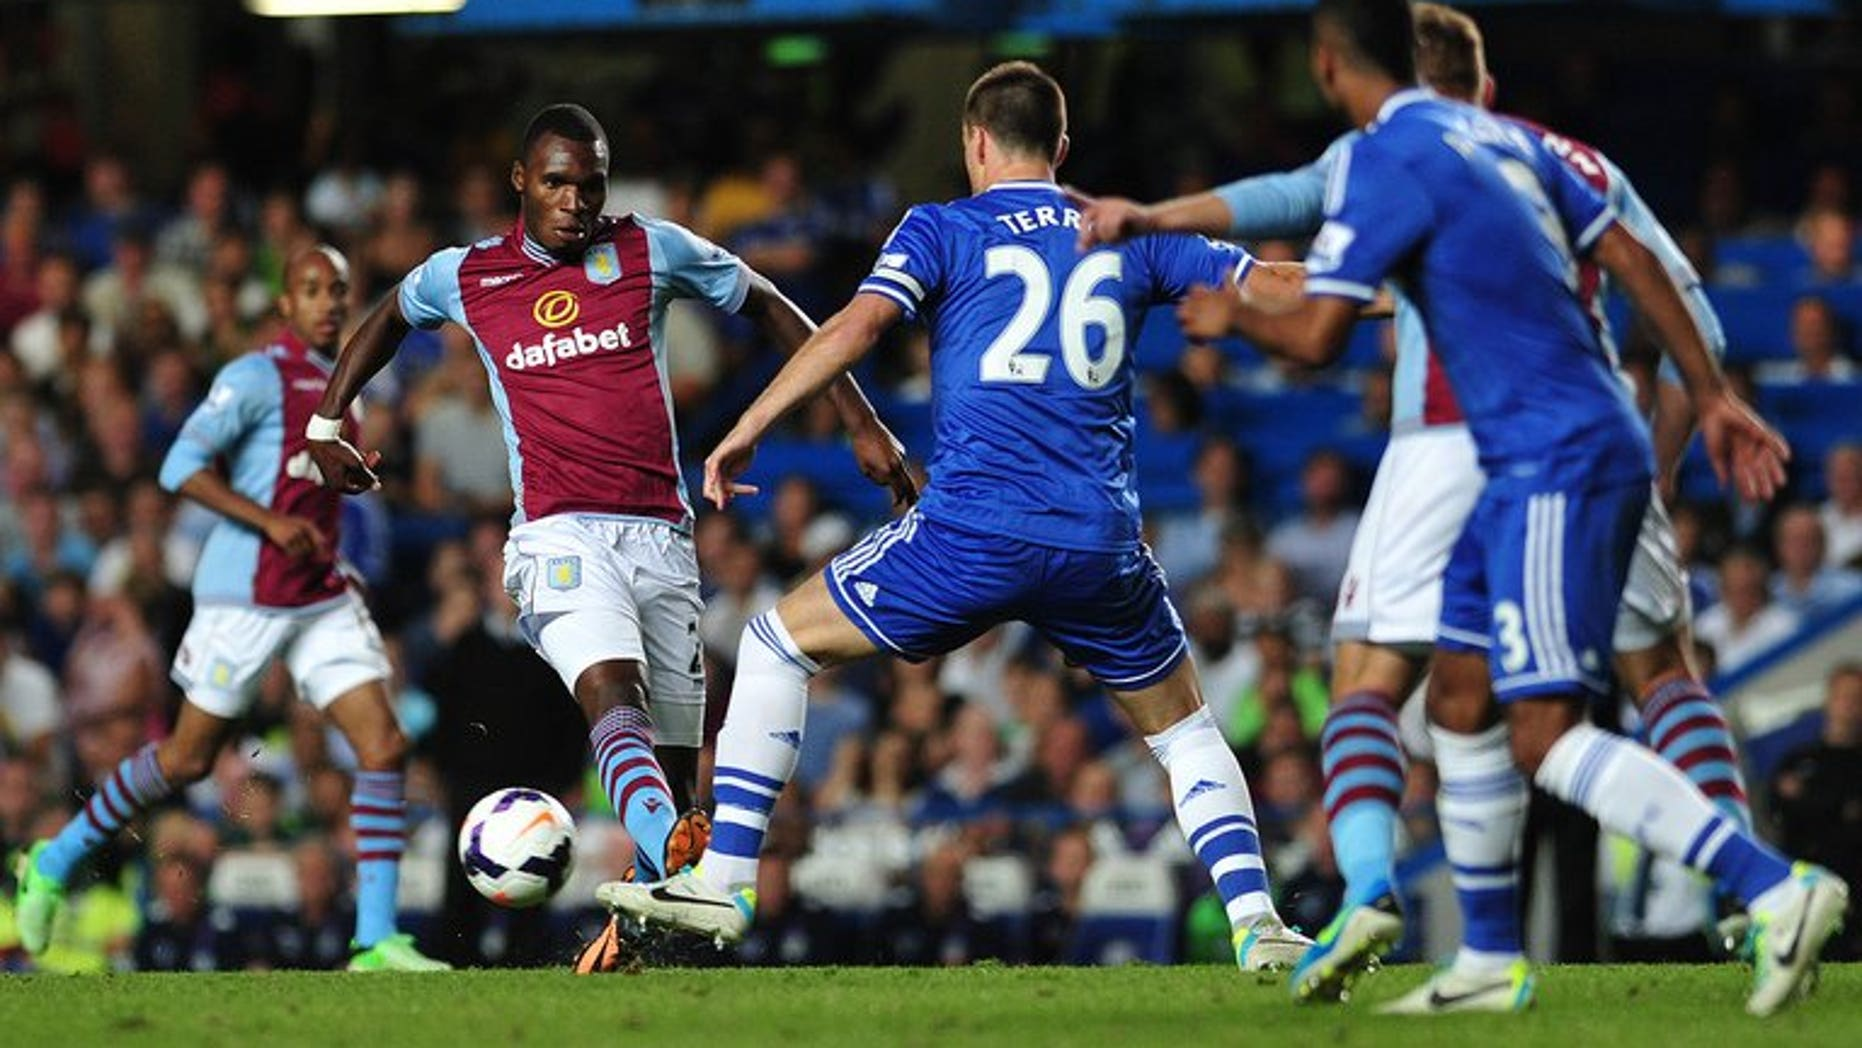 John Terry (centre) tackles Aston Villa's Christian Benteke at Stamford Bridge on Wednesday. Aston Villa manager Paul Lambert on Thursday claimed that his side were the victims of double standards after being denied a late penalty in their Premier League defeat at Chelsea.